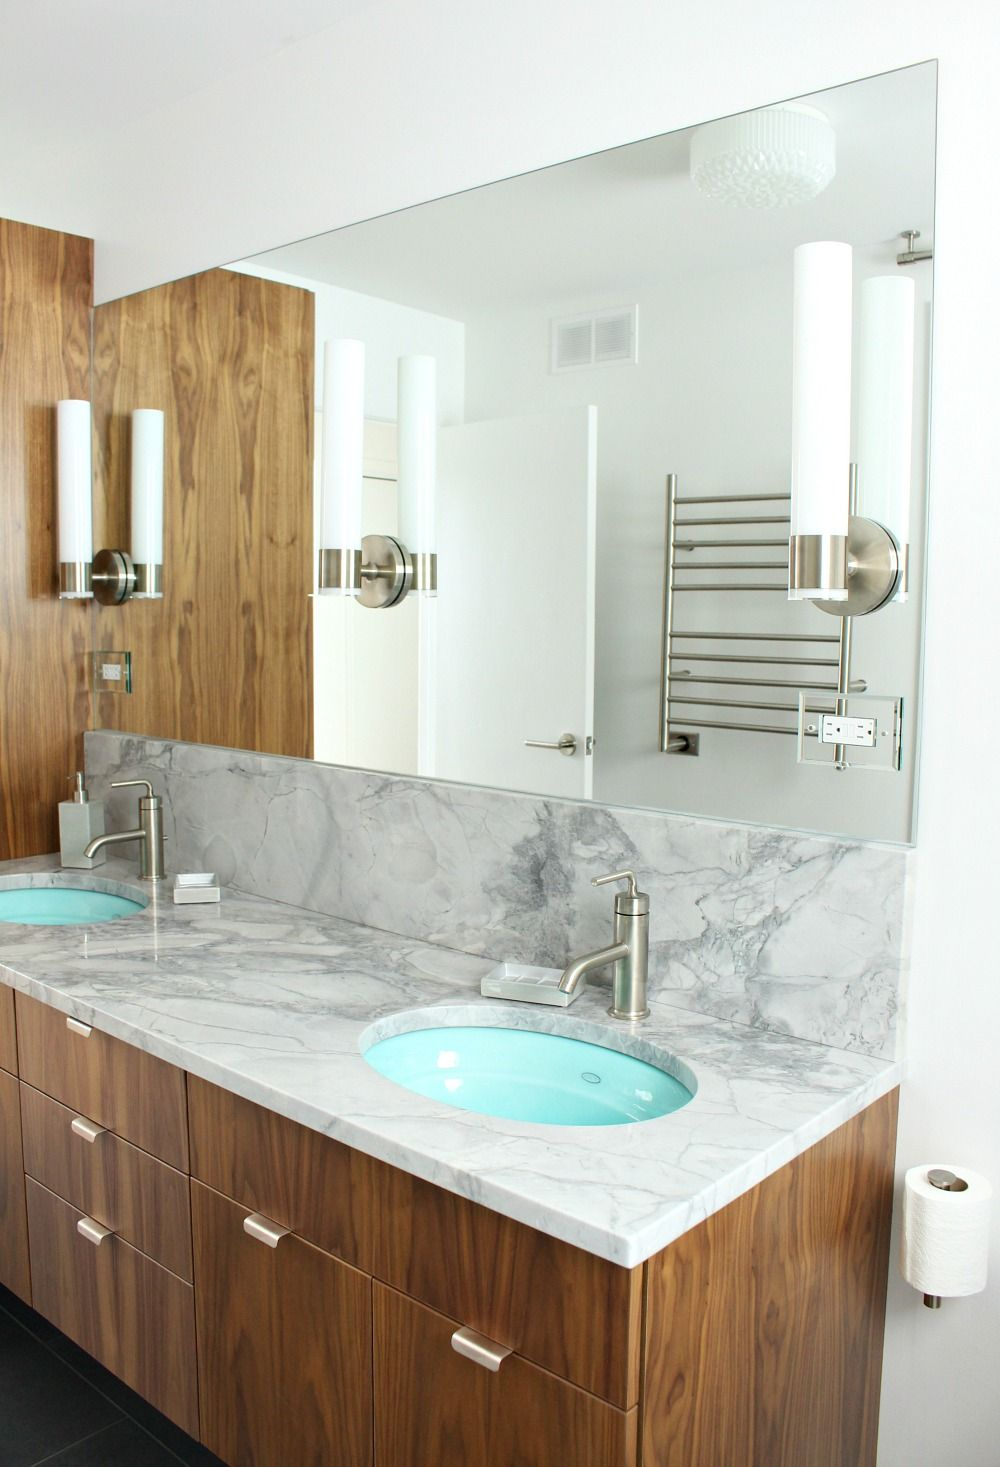 Bathroom Mirror Brushed Nickel Bathroom Update How To Install Bathroom Sconces On A Mirror